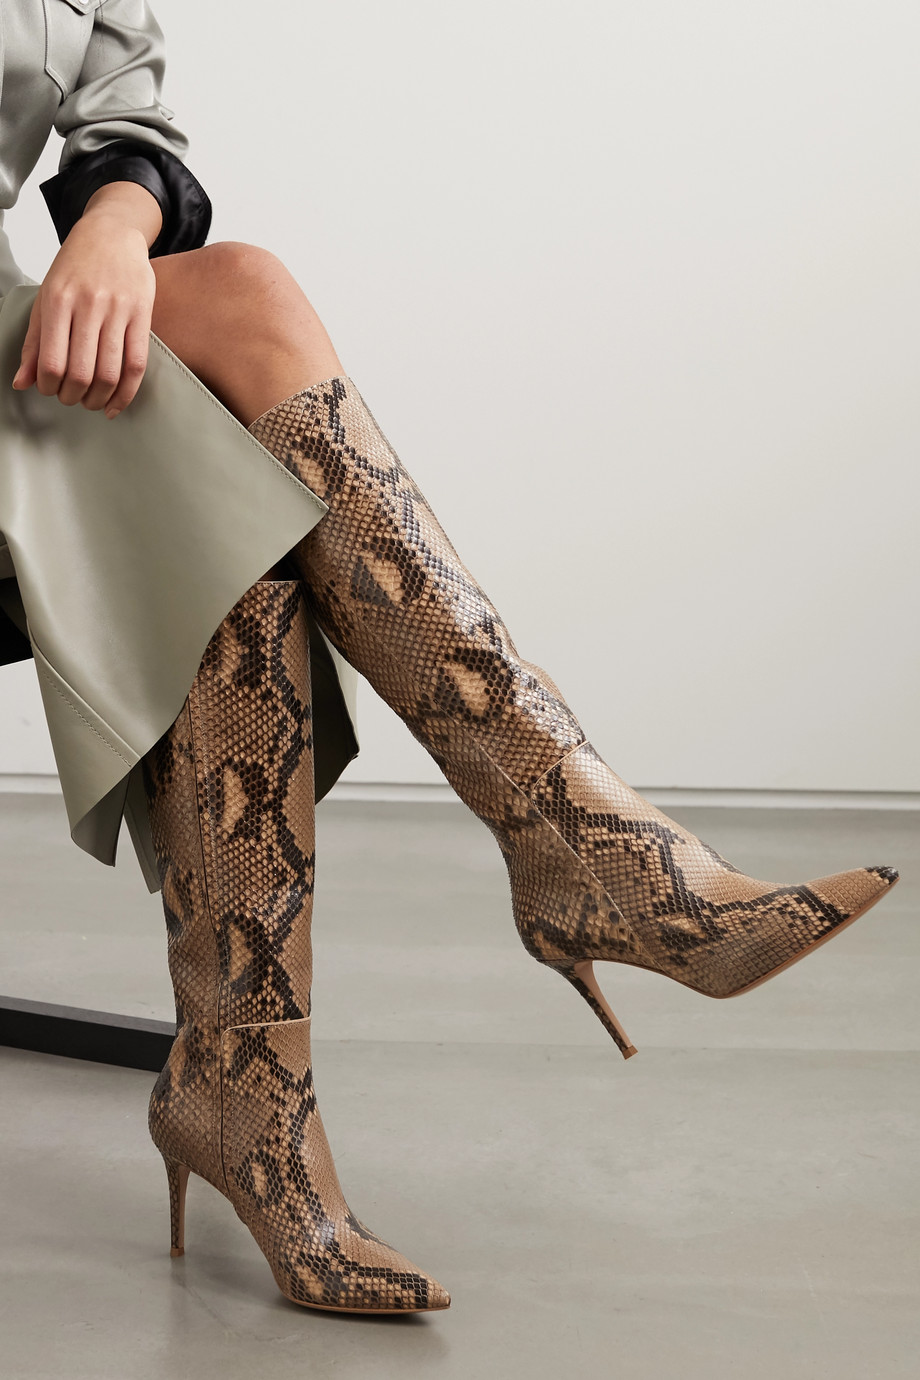 Gianvito Rossi 85 python knee boots